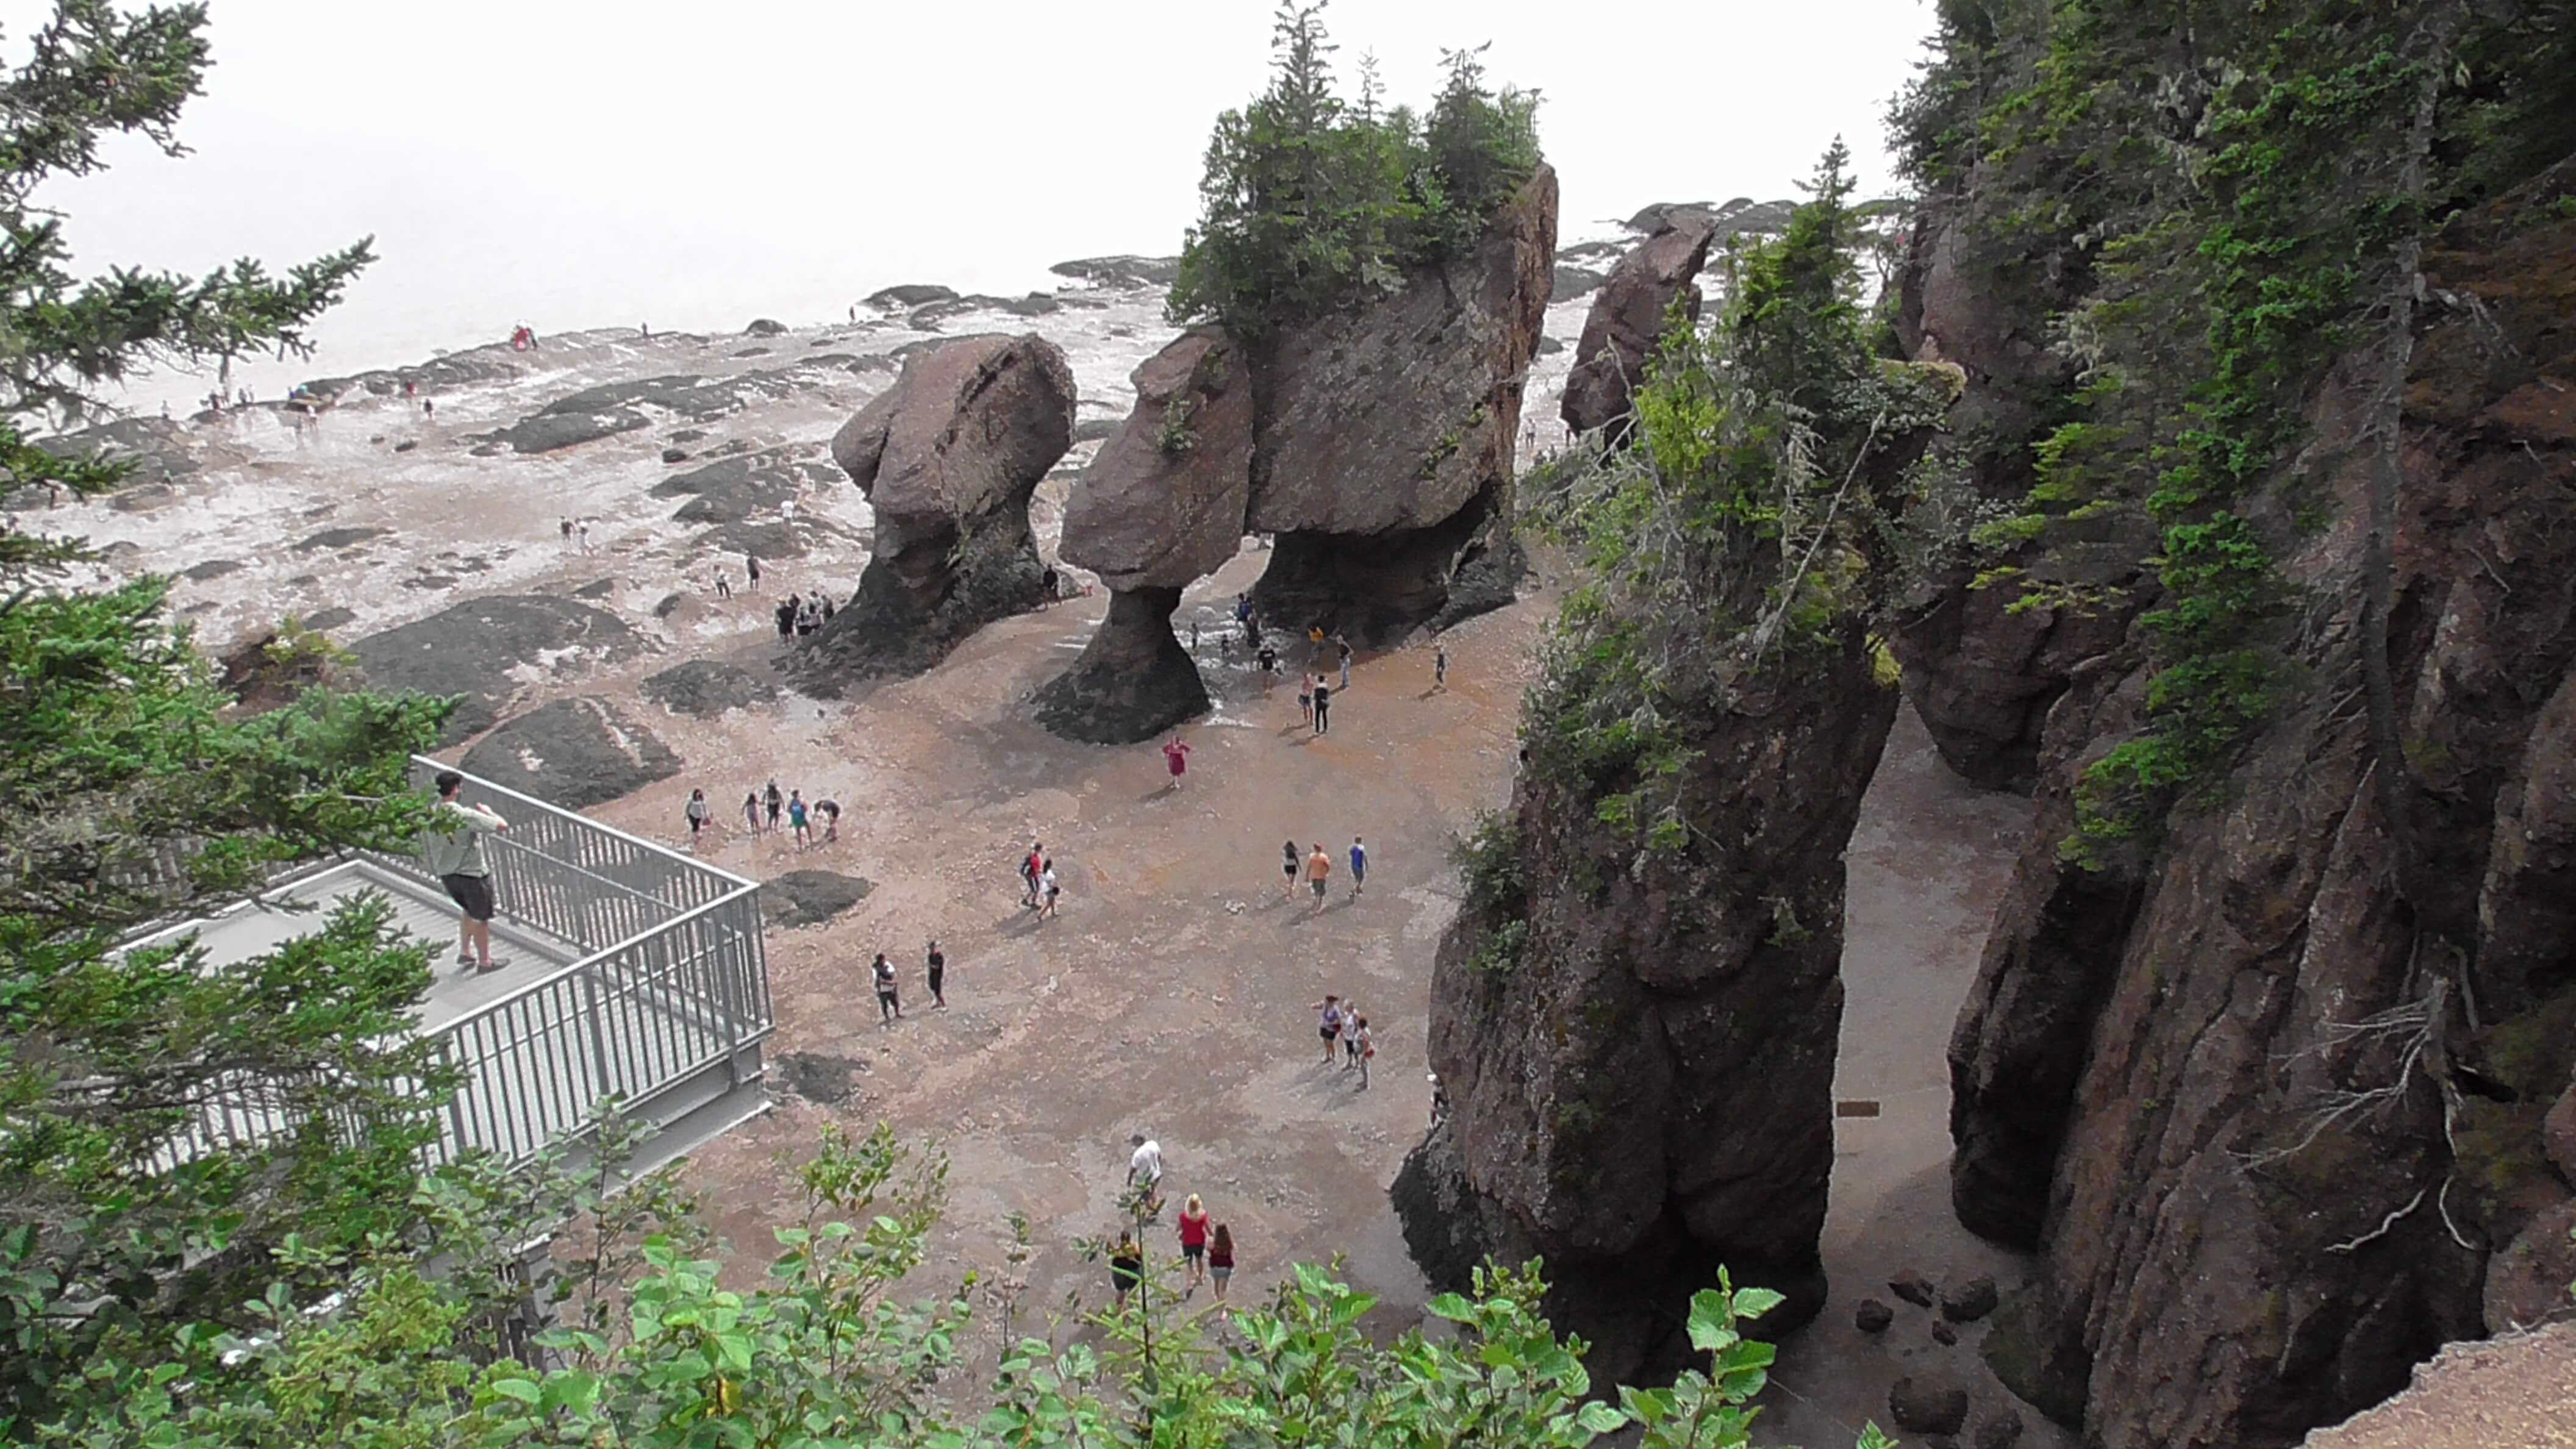 Hopewell Rocks at low tide - View from the top - Lover's arch in the middle